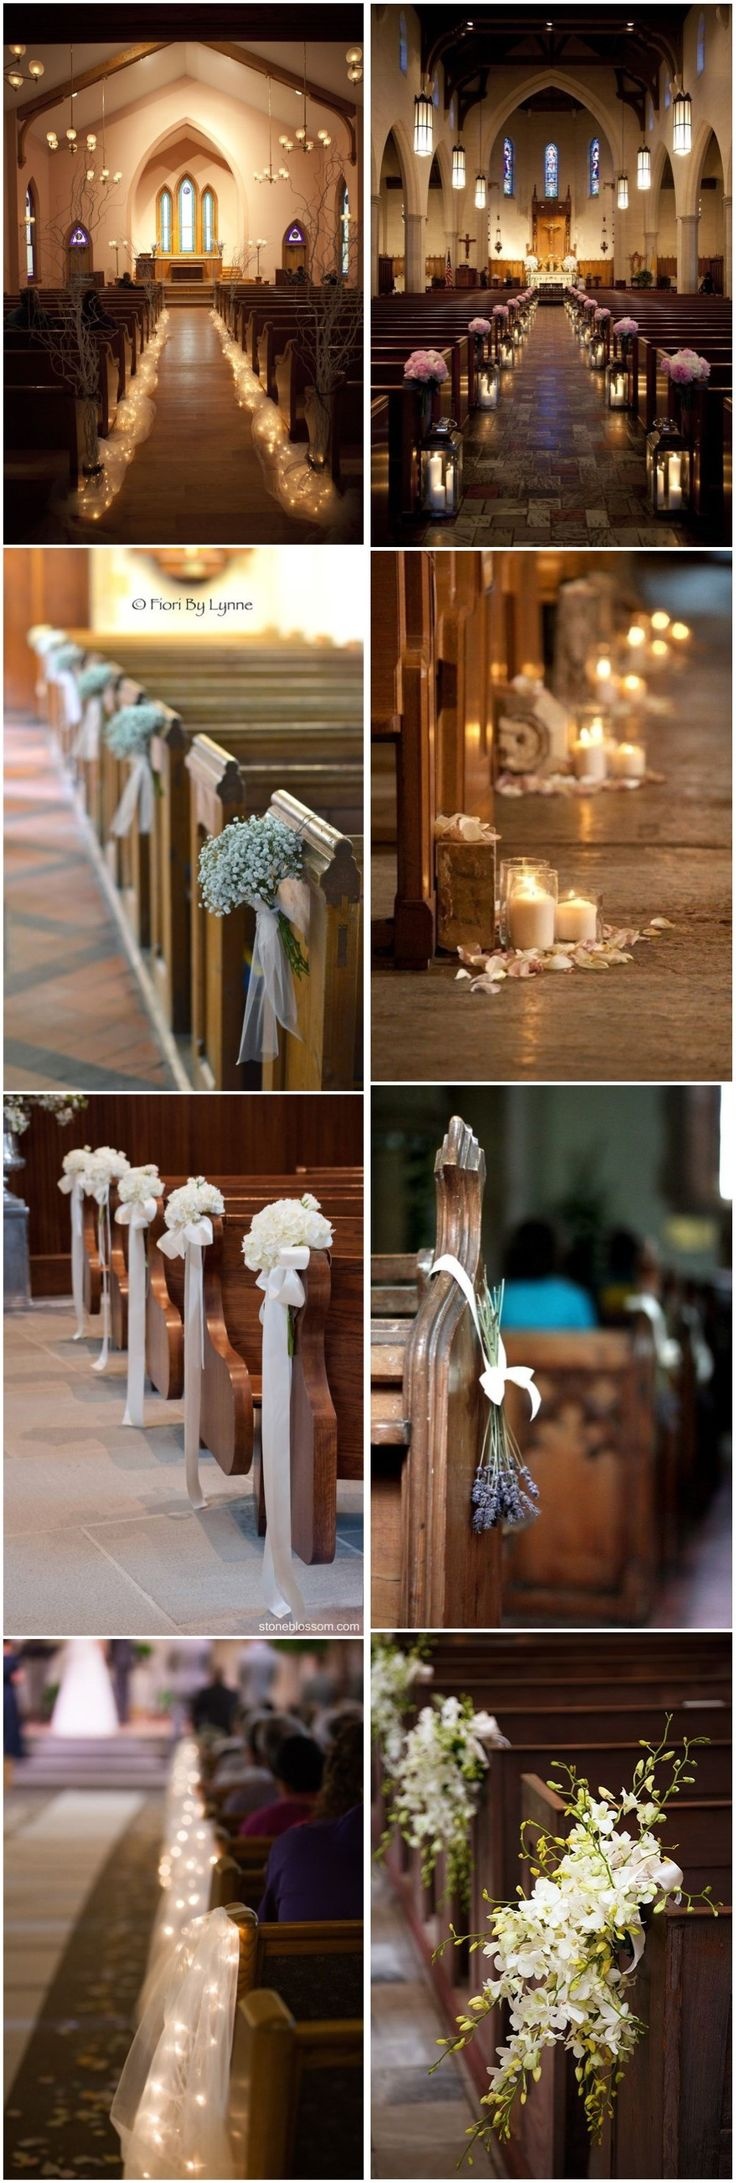 Wedding Decorations » 21 Stunning Church Wedding Aisle Decoration Ideas to Steal »   ❤️ See more:  http://www.weddinginclude.com/2017/05/stunning-church-wedding-aisle-decoration-ideas-to-steal/